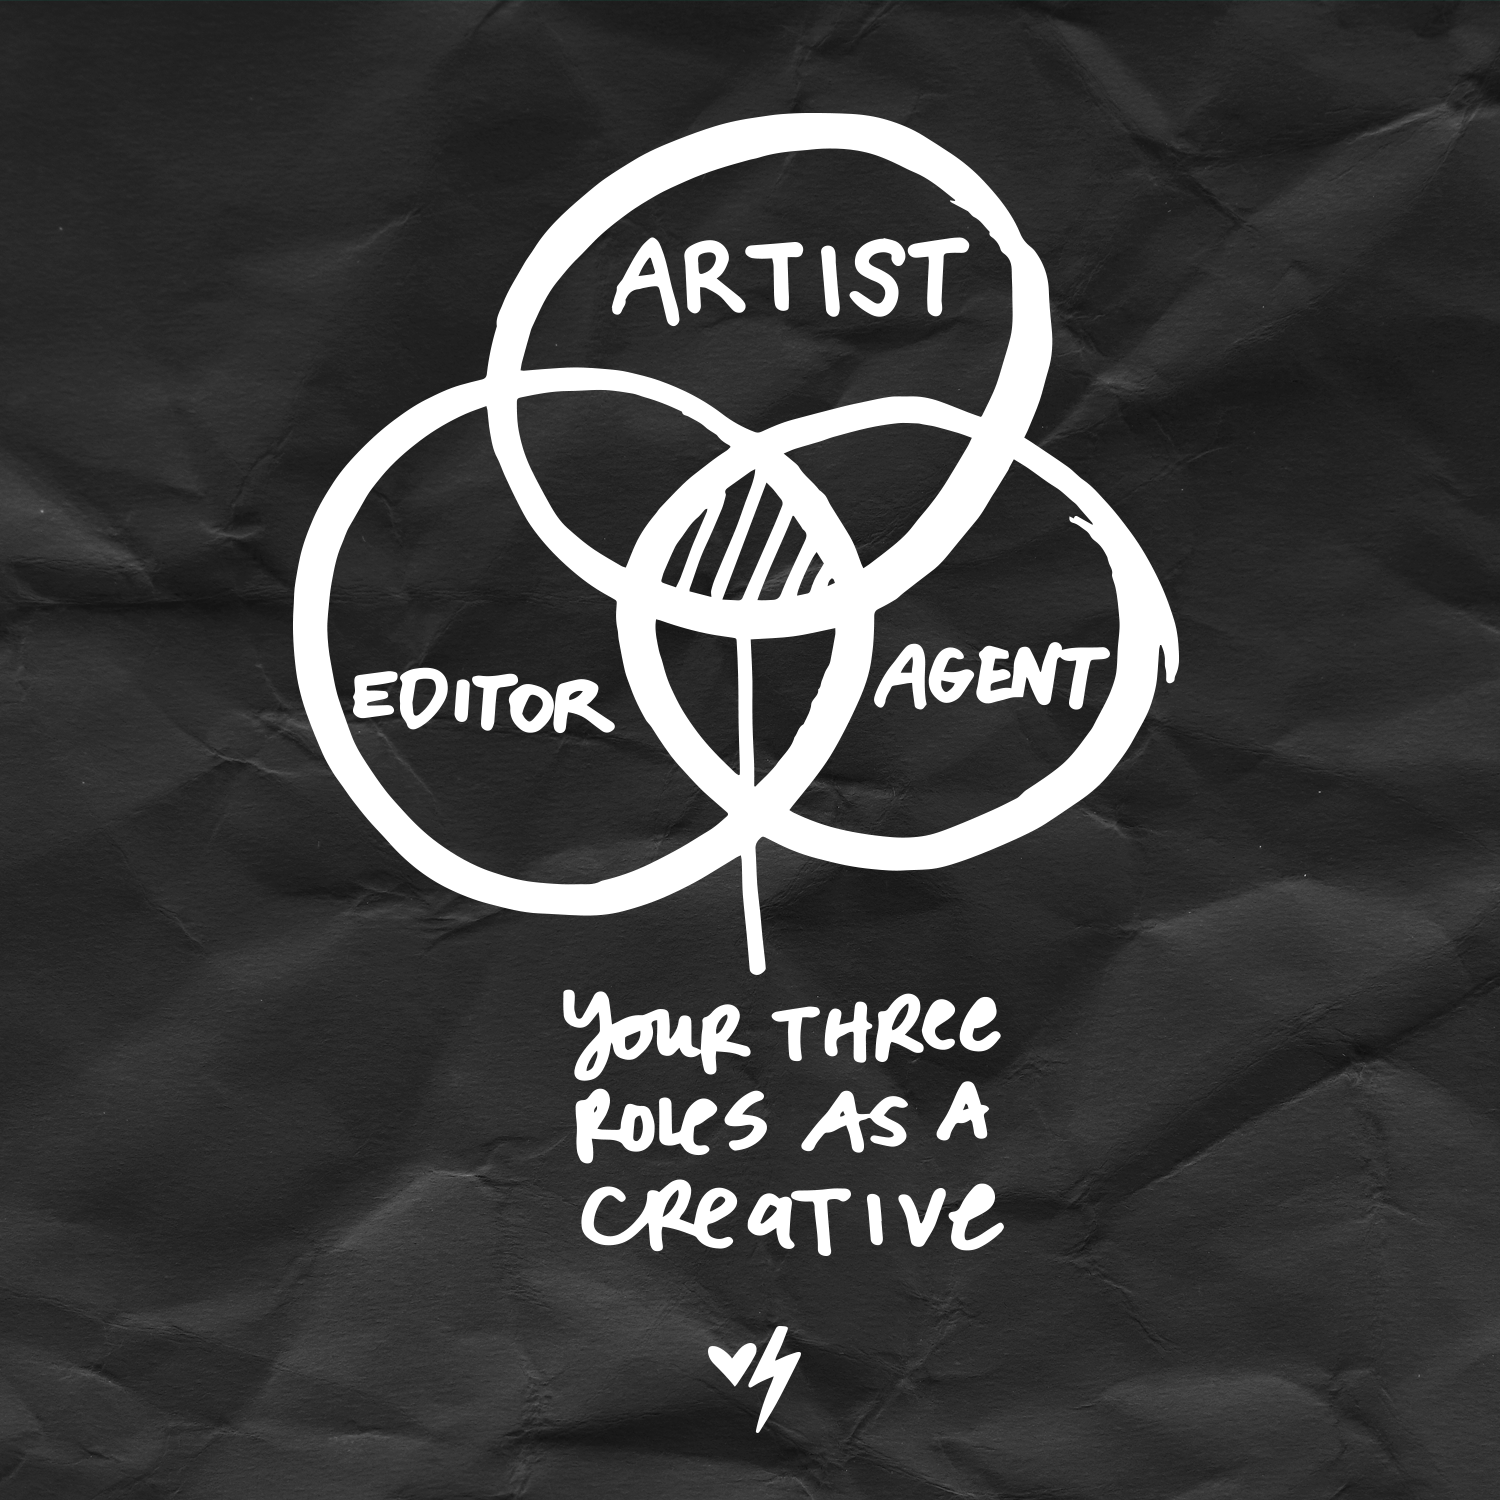 Artist Editor Agent.png